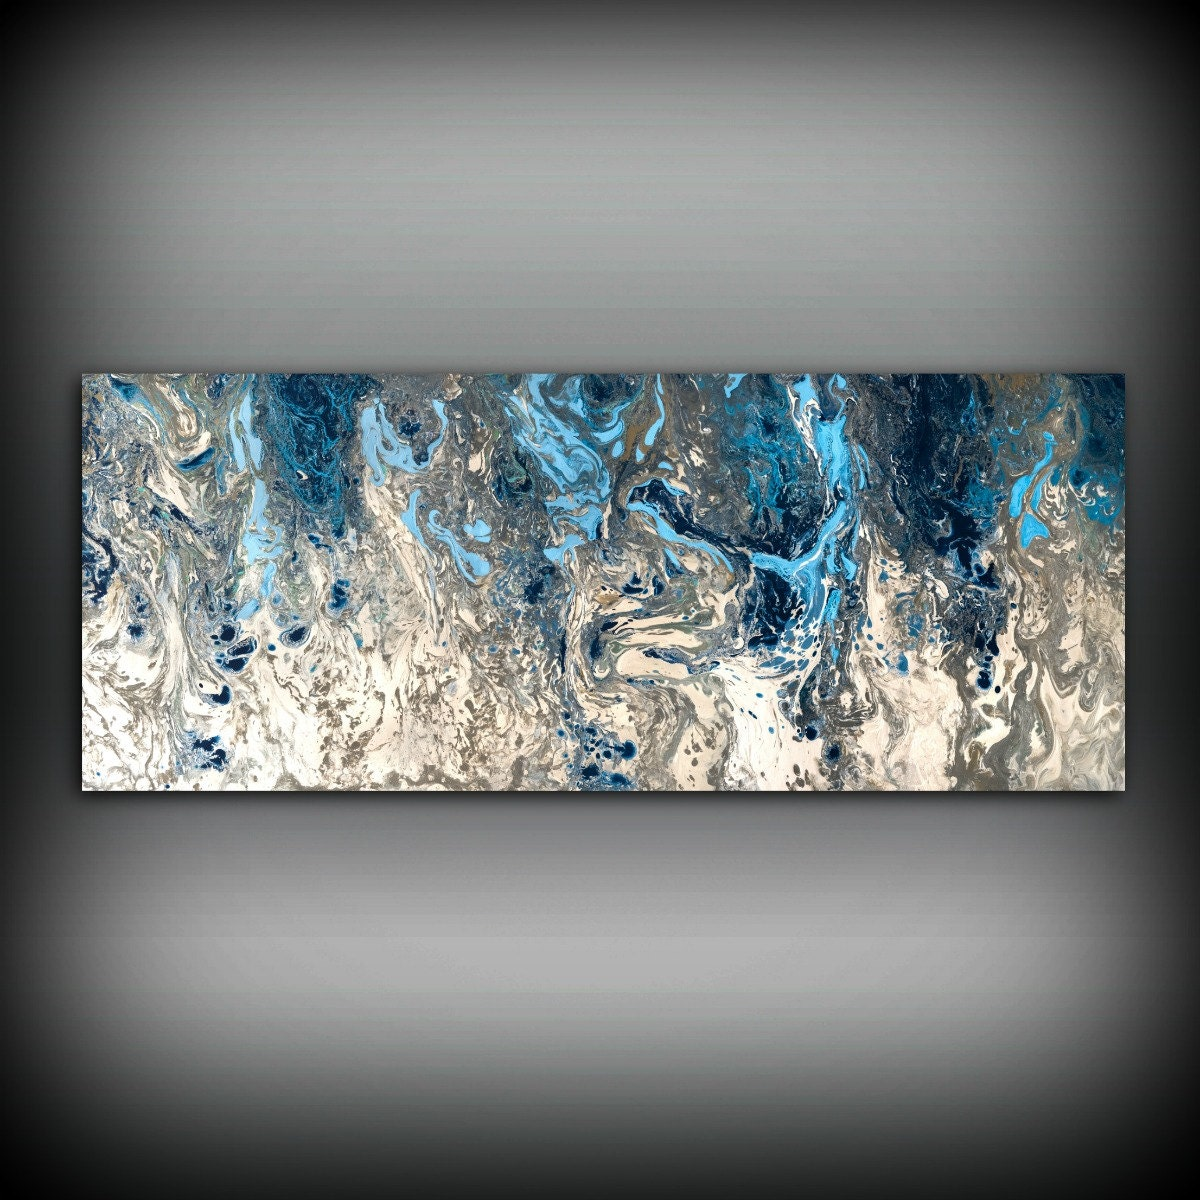 Blue Abstract Wall Decor : Large abstract painting print navy blue art